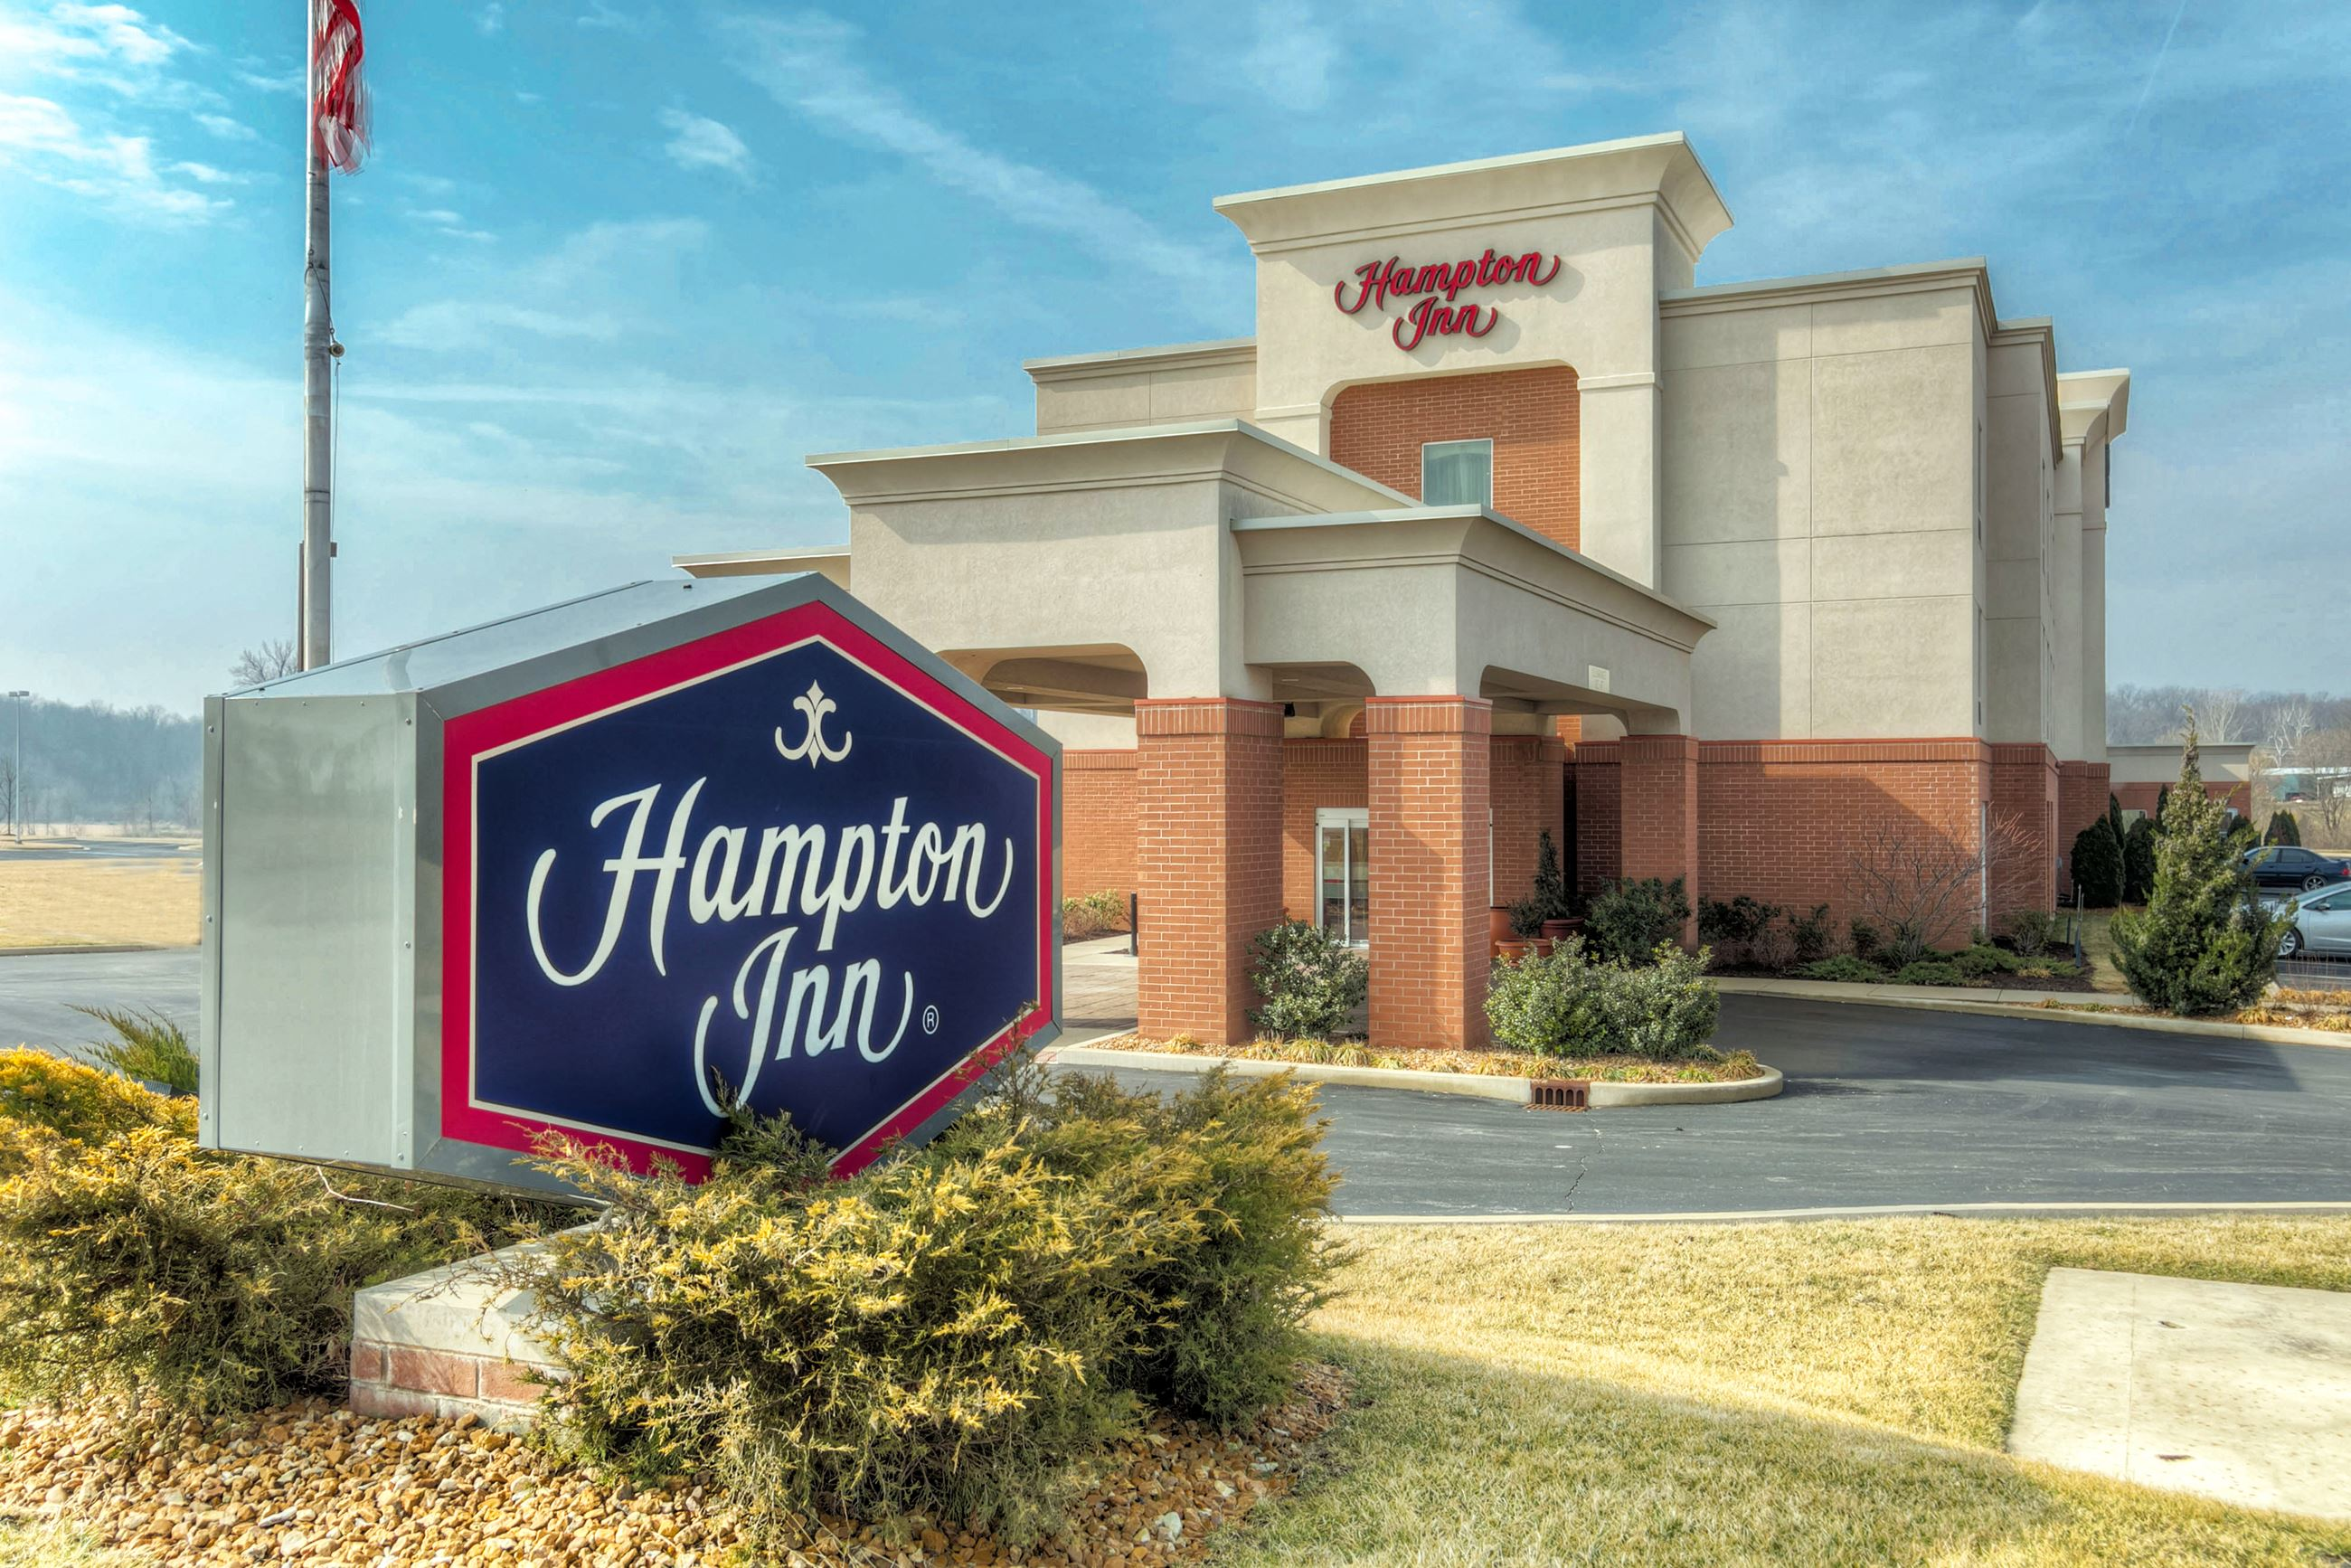 Hampton Inn Front - use this one 2016